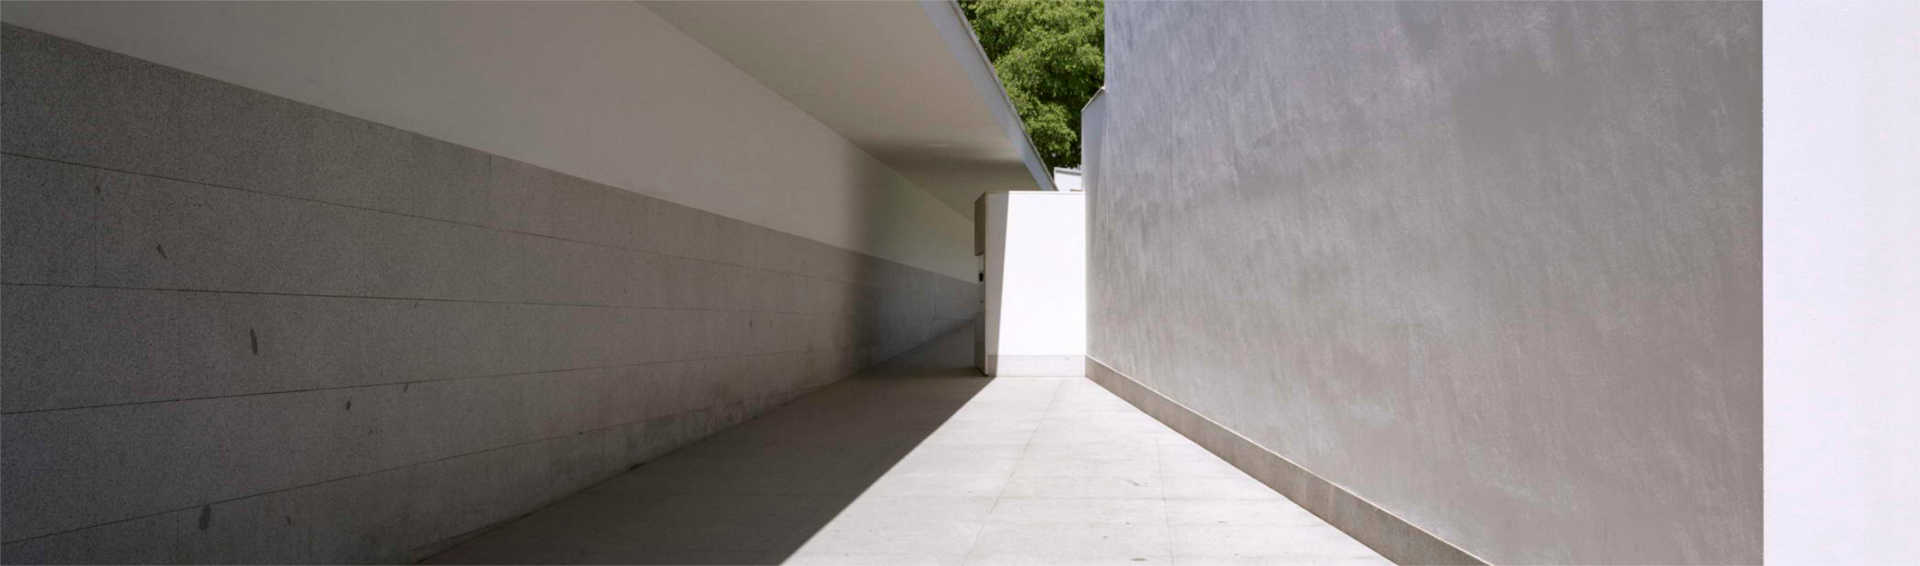 Serralves Foundation - image 6